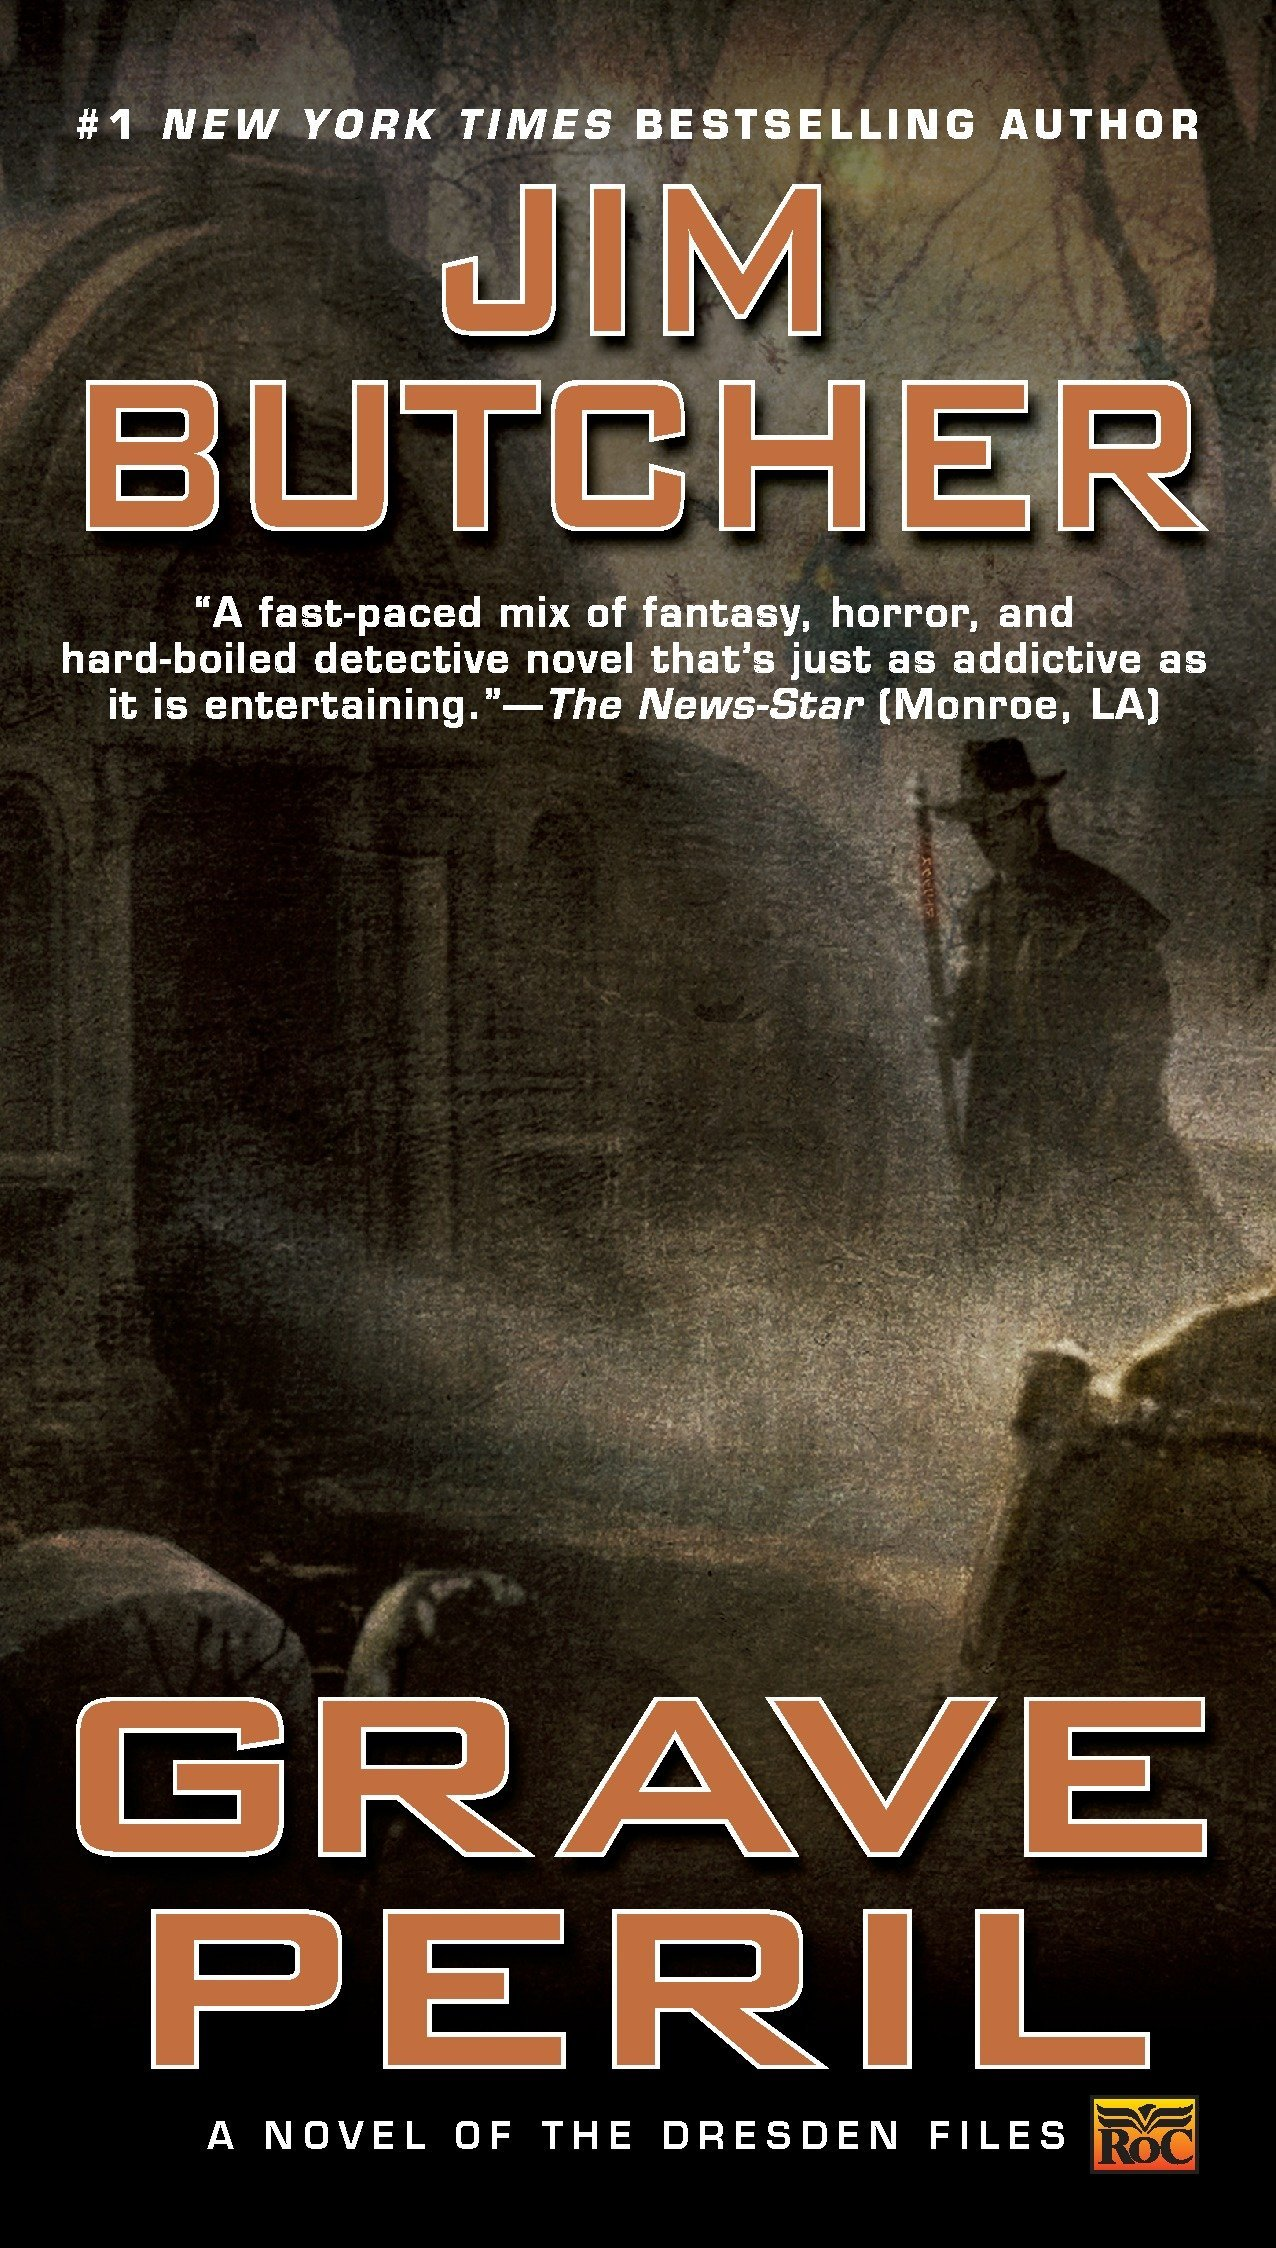 Amazon.com: Grave Peril (The Dresden Files, Book 3) (9780451458445): Jim  Butcher: Books